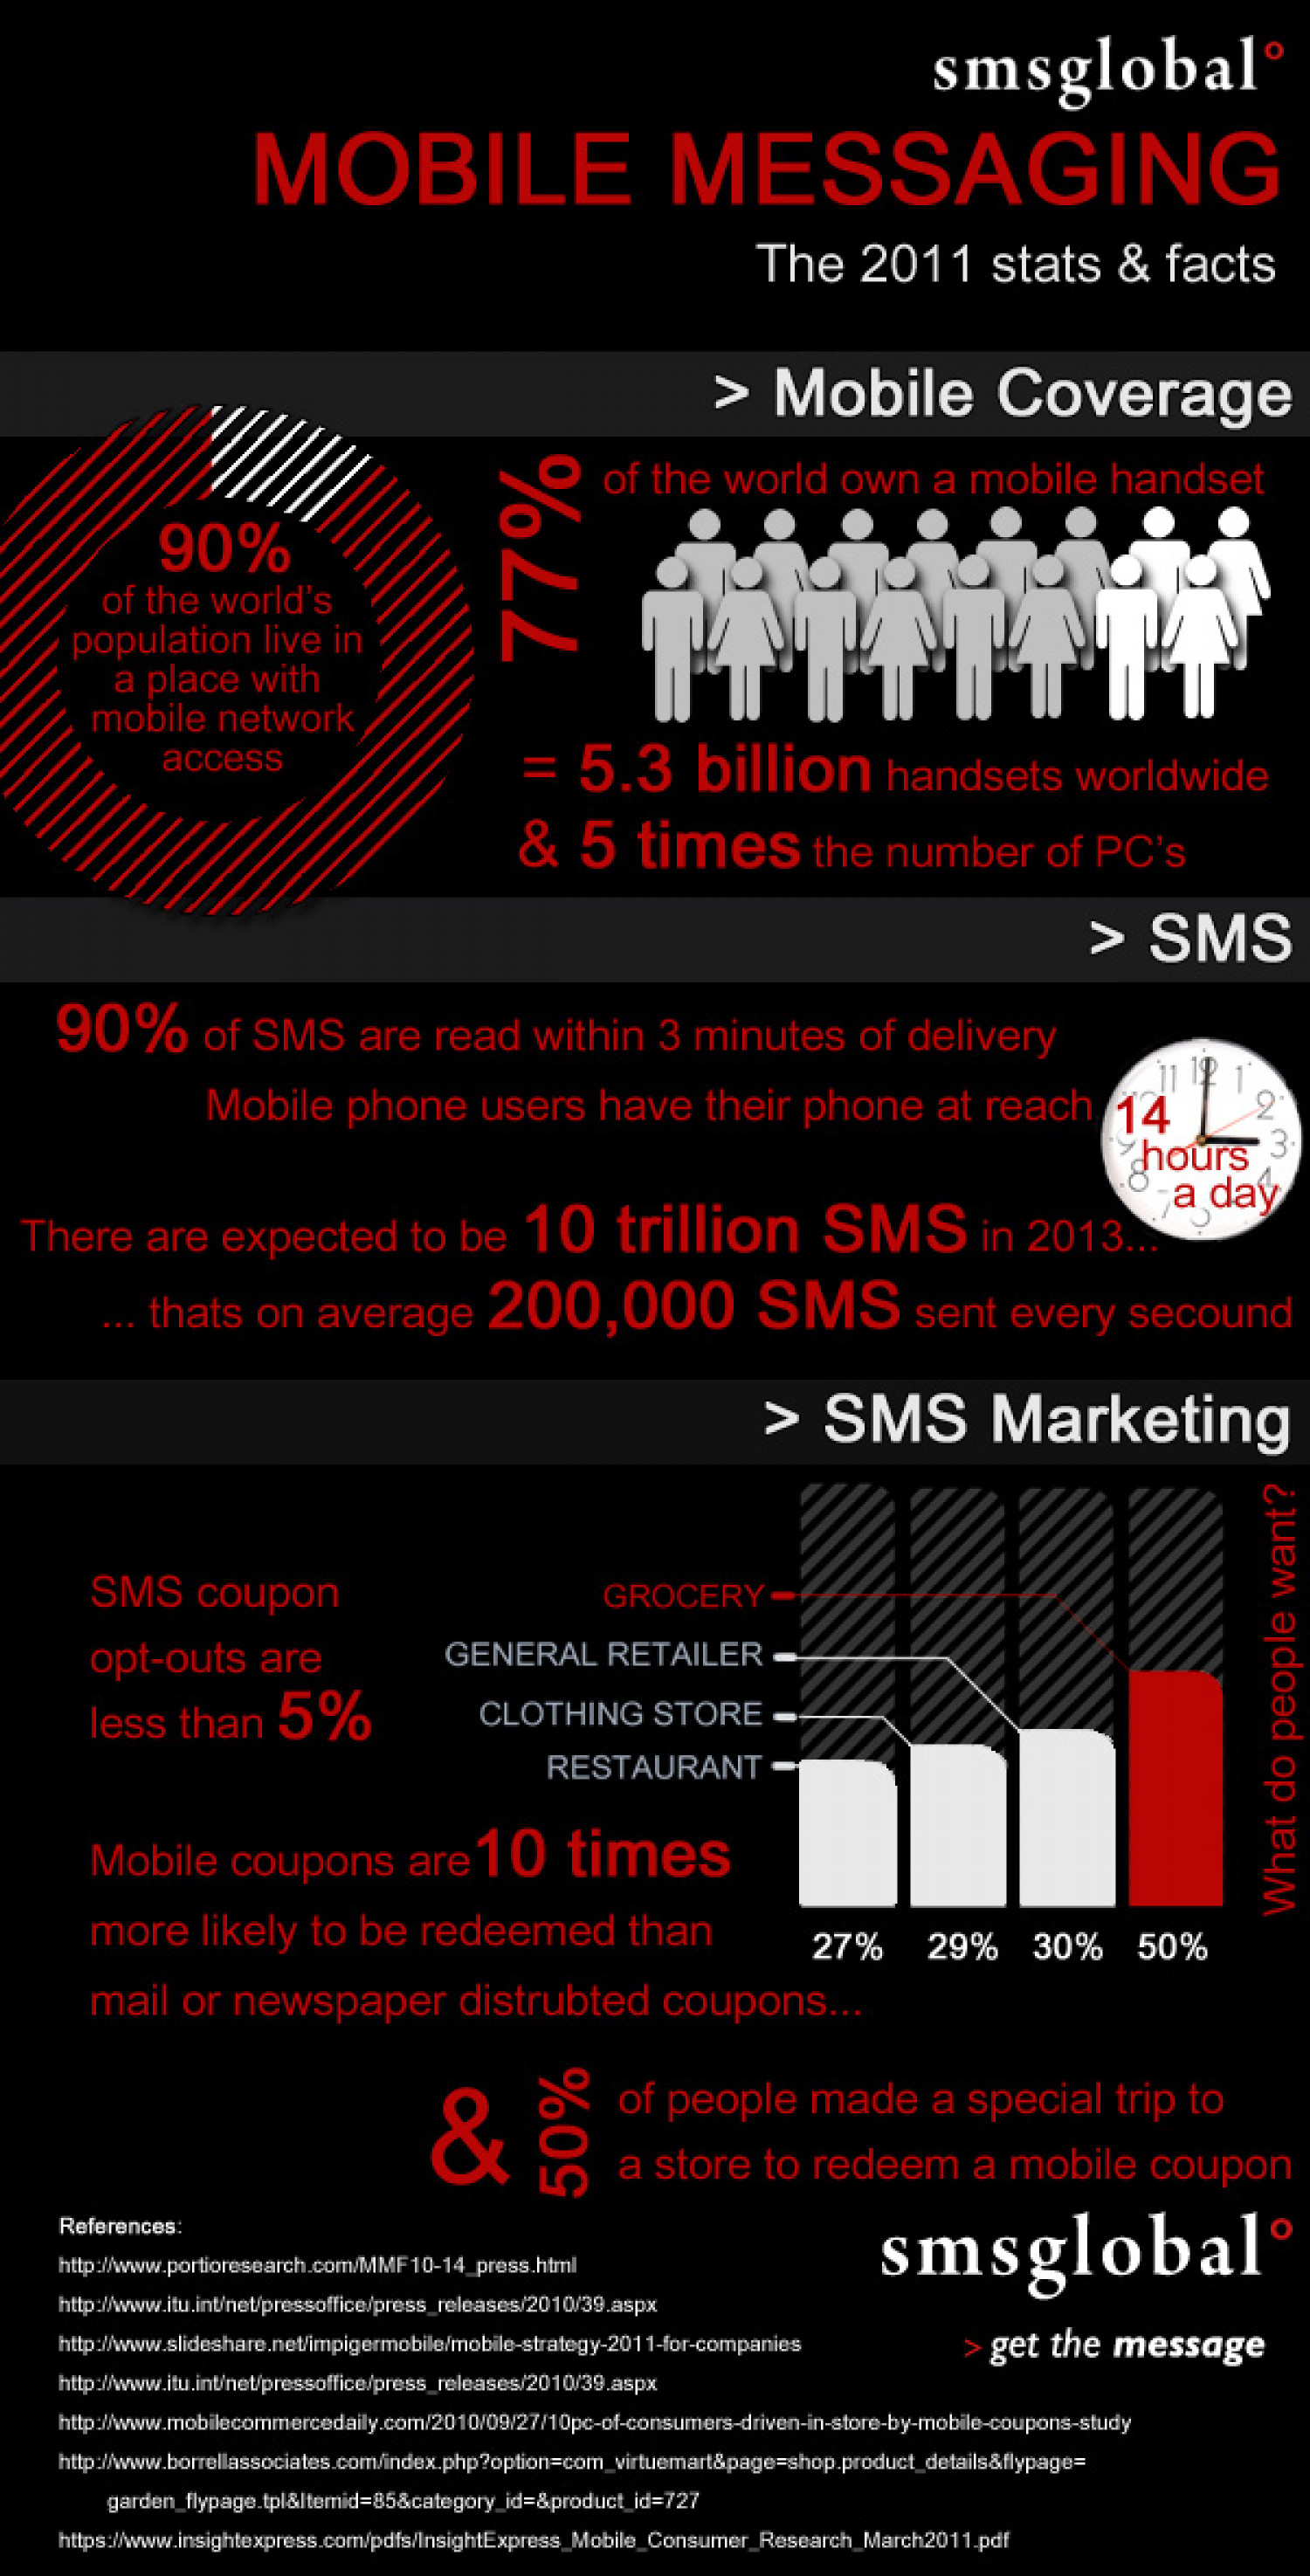 Mobile Messaging in 2011 Infographic